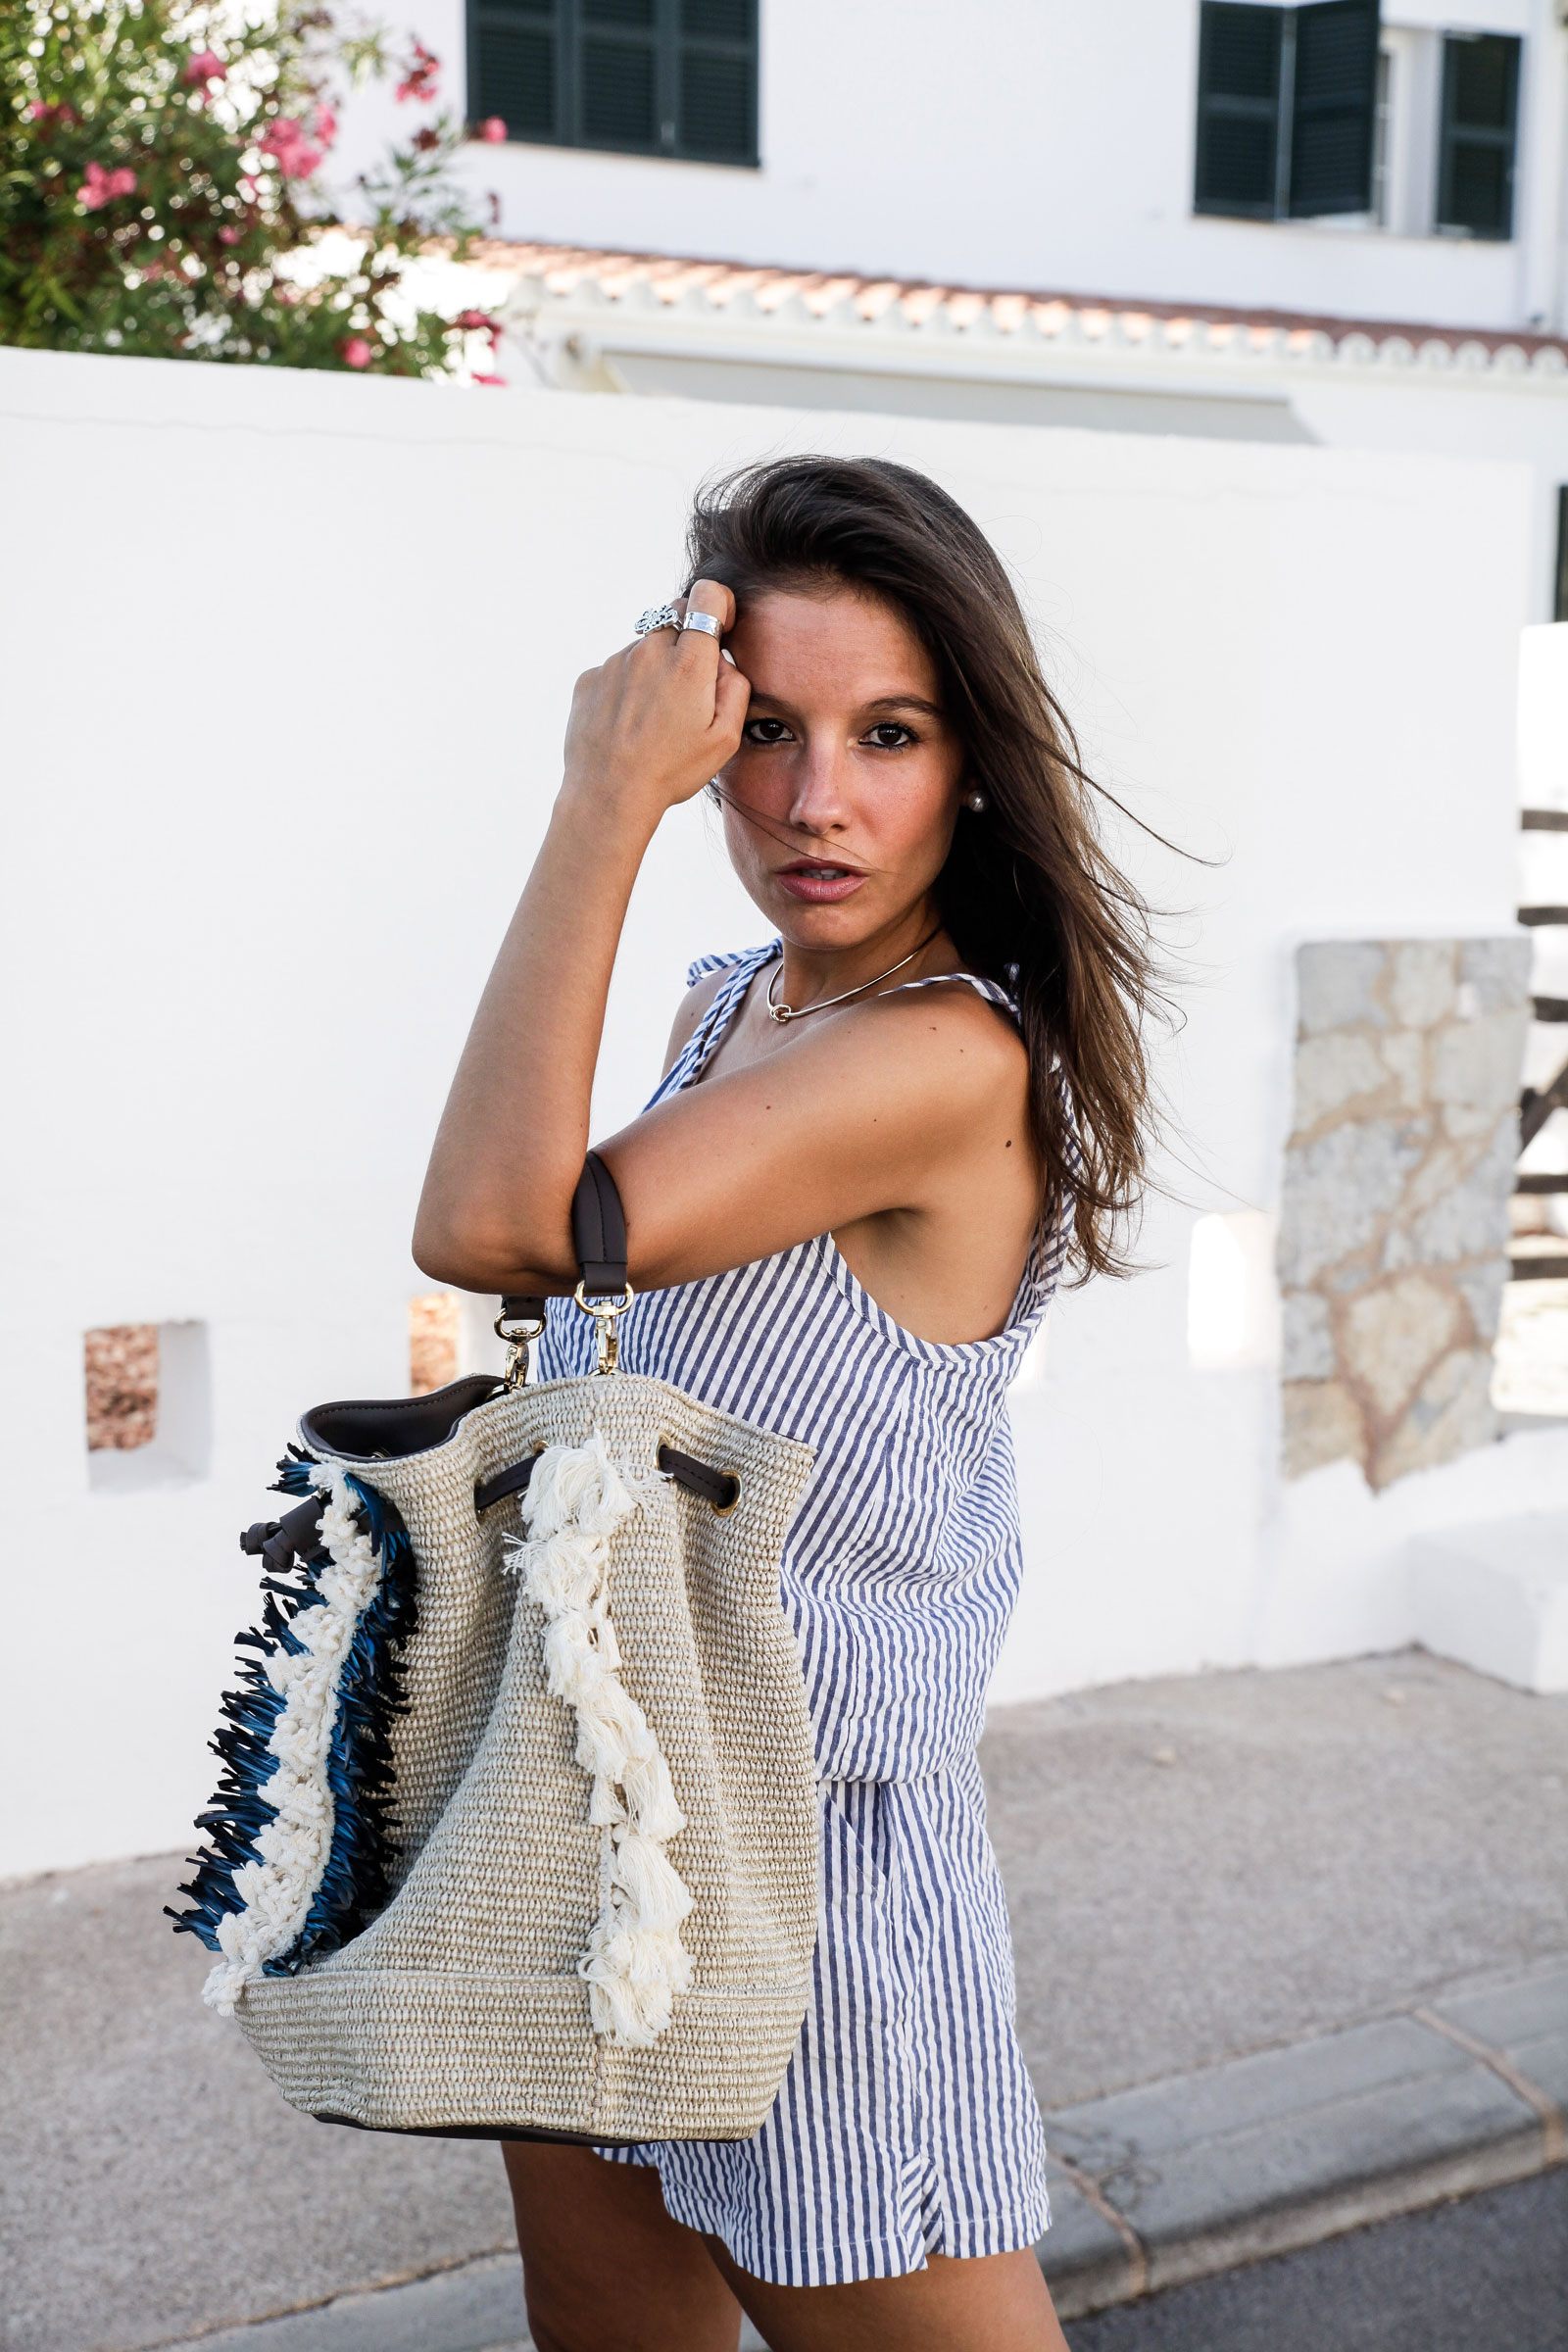 06_Mono_rayas_marineras_casual_outfit_theguestgirl_bolso_boho_via_email_pieces_style_the_guest_girl_influencer_menorca_minorca_barcelona_spain_fashion_blogger